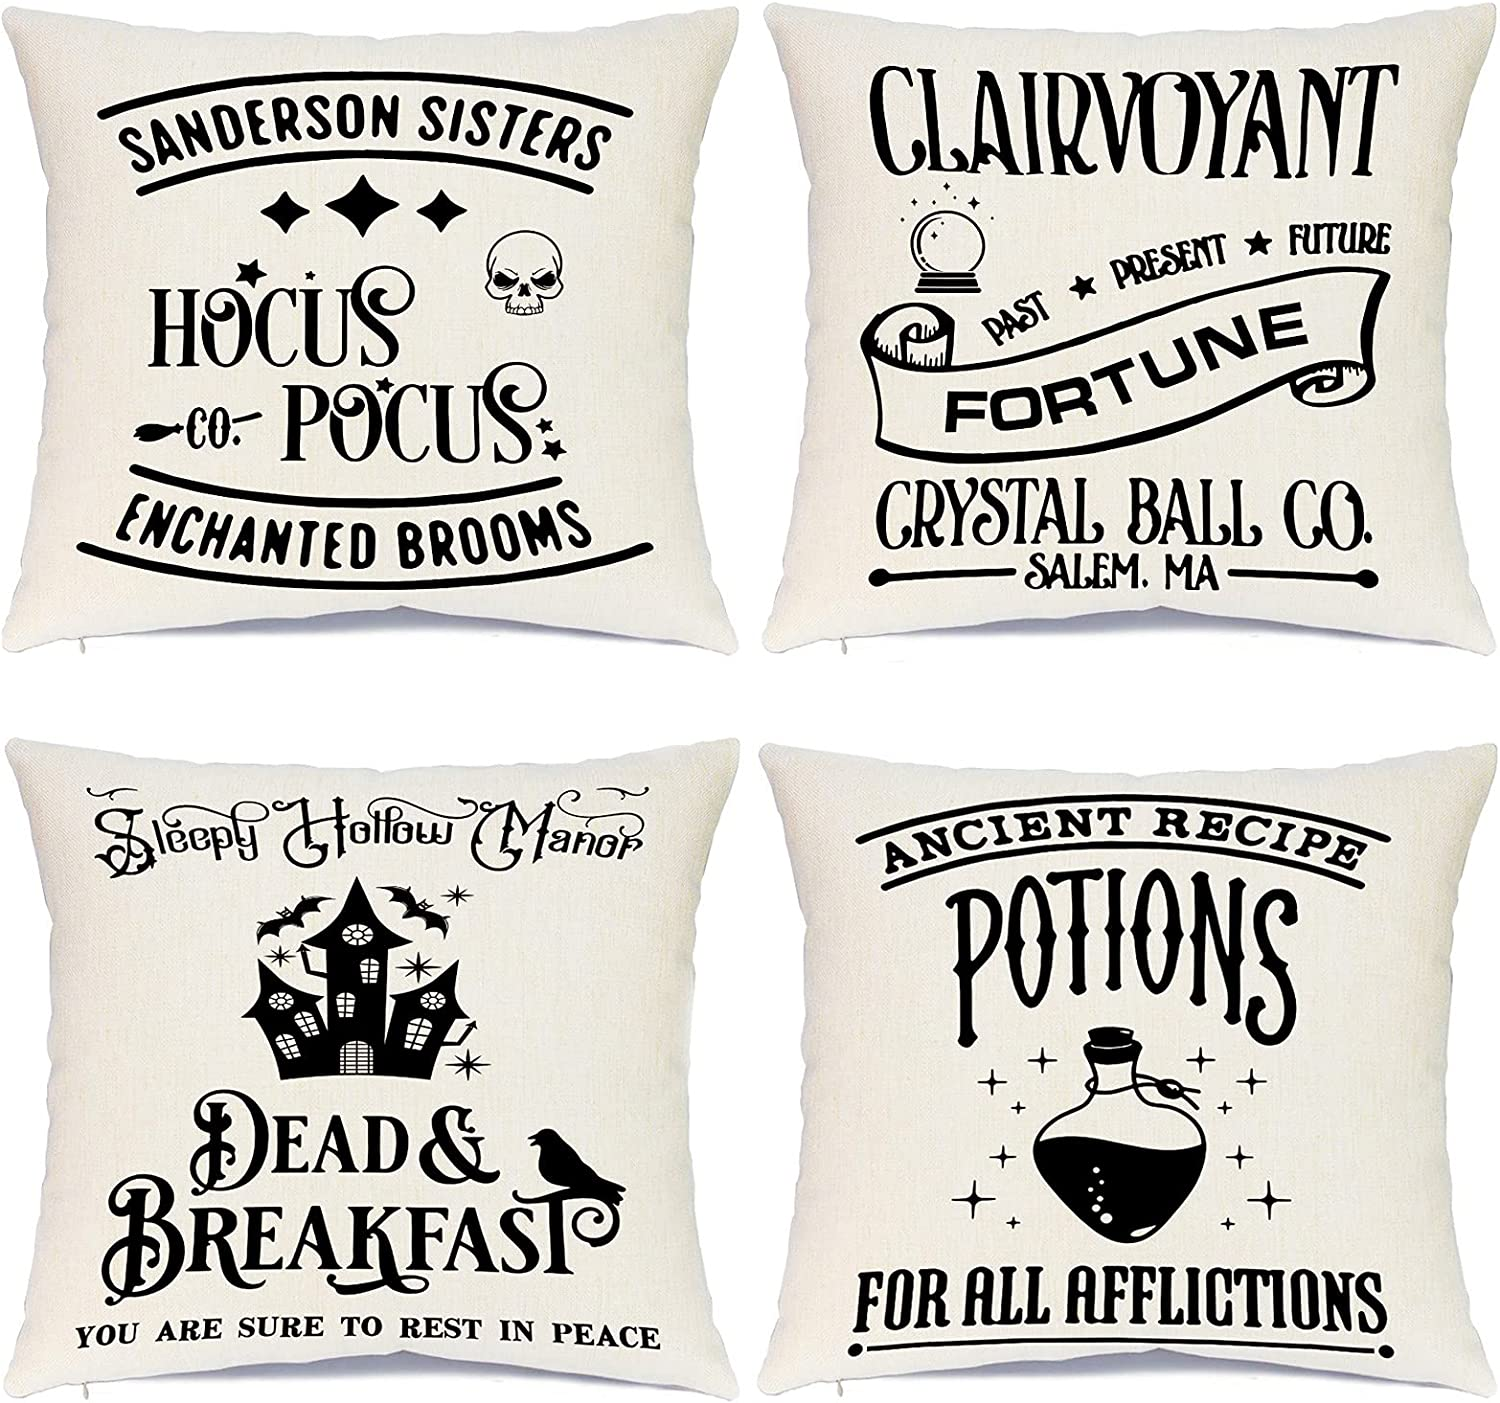 Sadaunbe Halloween Throw Pillow Covers Set of 4 Hocus Pocus Clairvoyant Witch Potions Decorative Pillow Covers for Halloween Indoor Outdoor Sofa Cushion Office Decor, 18 x 18 Inches